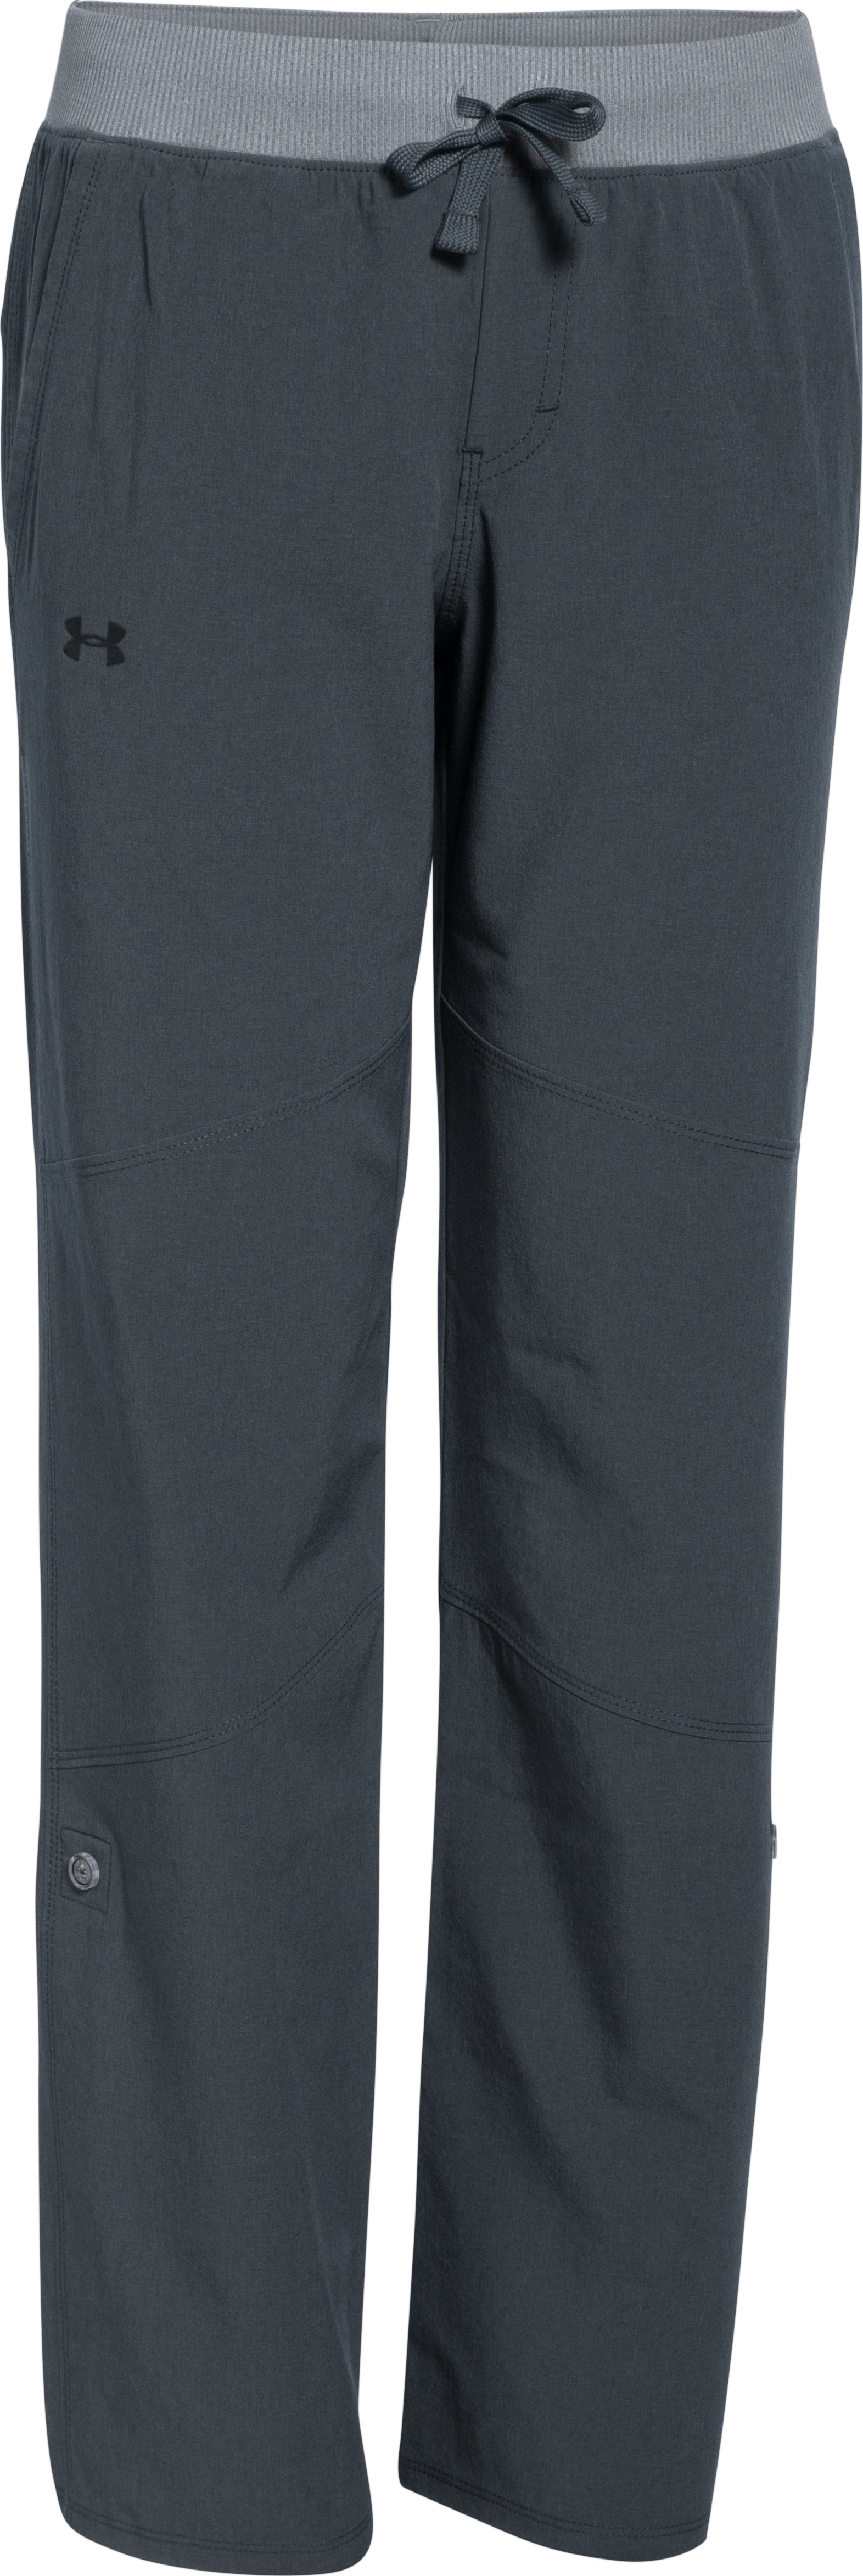 Girls' UA Premiere Woven Pants, STEALTH GRAY